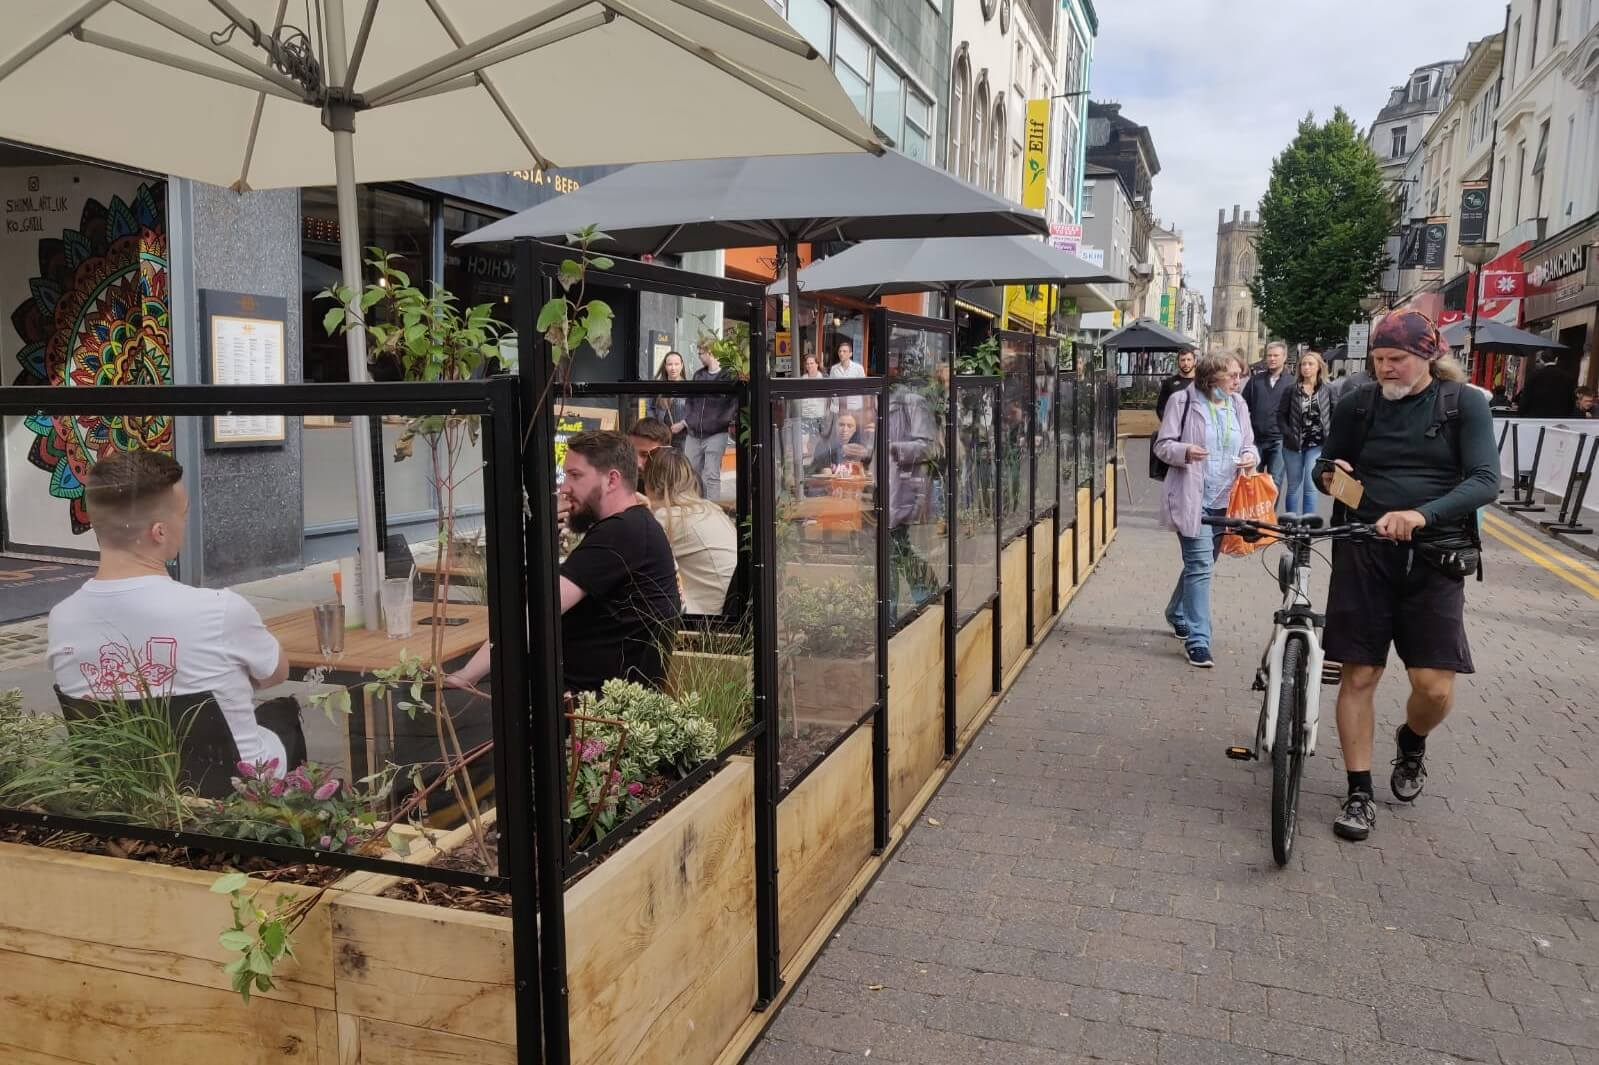 Parklets with perspex walling